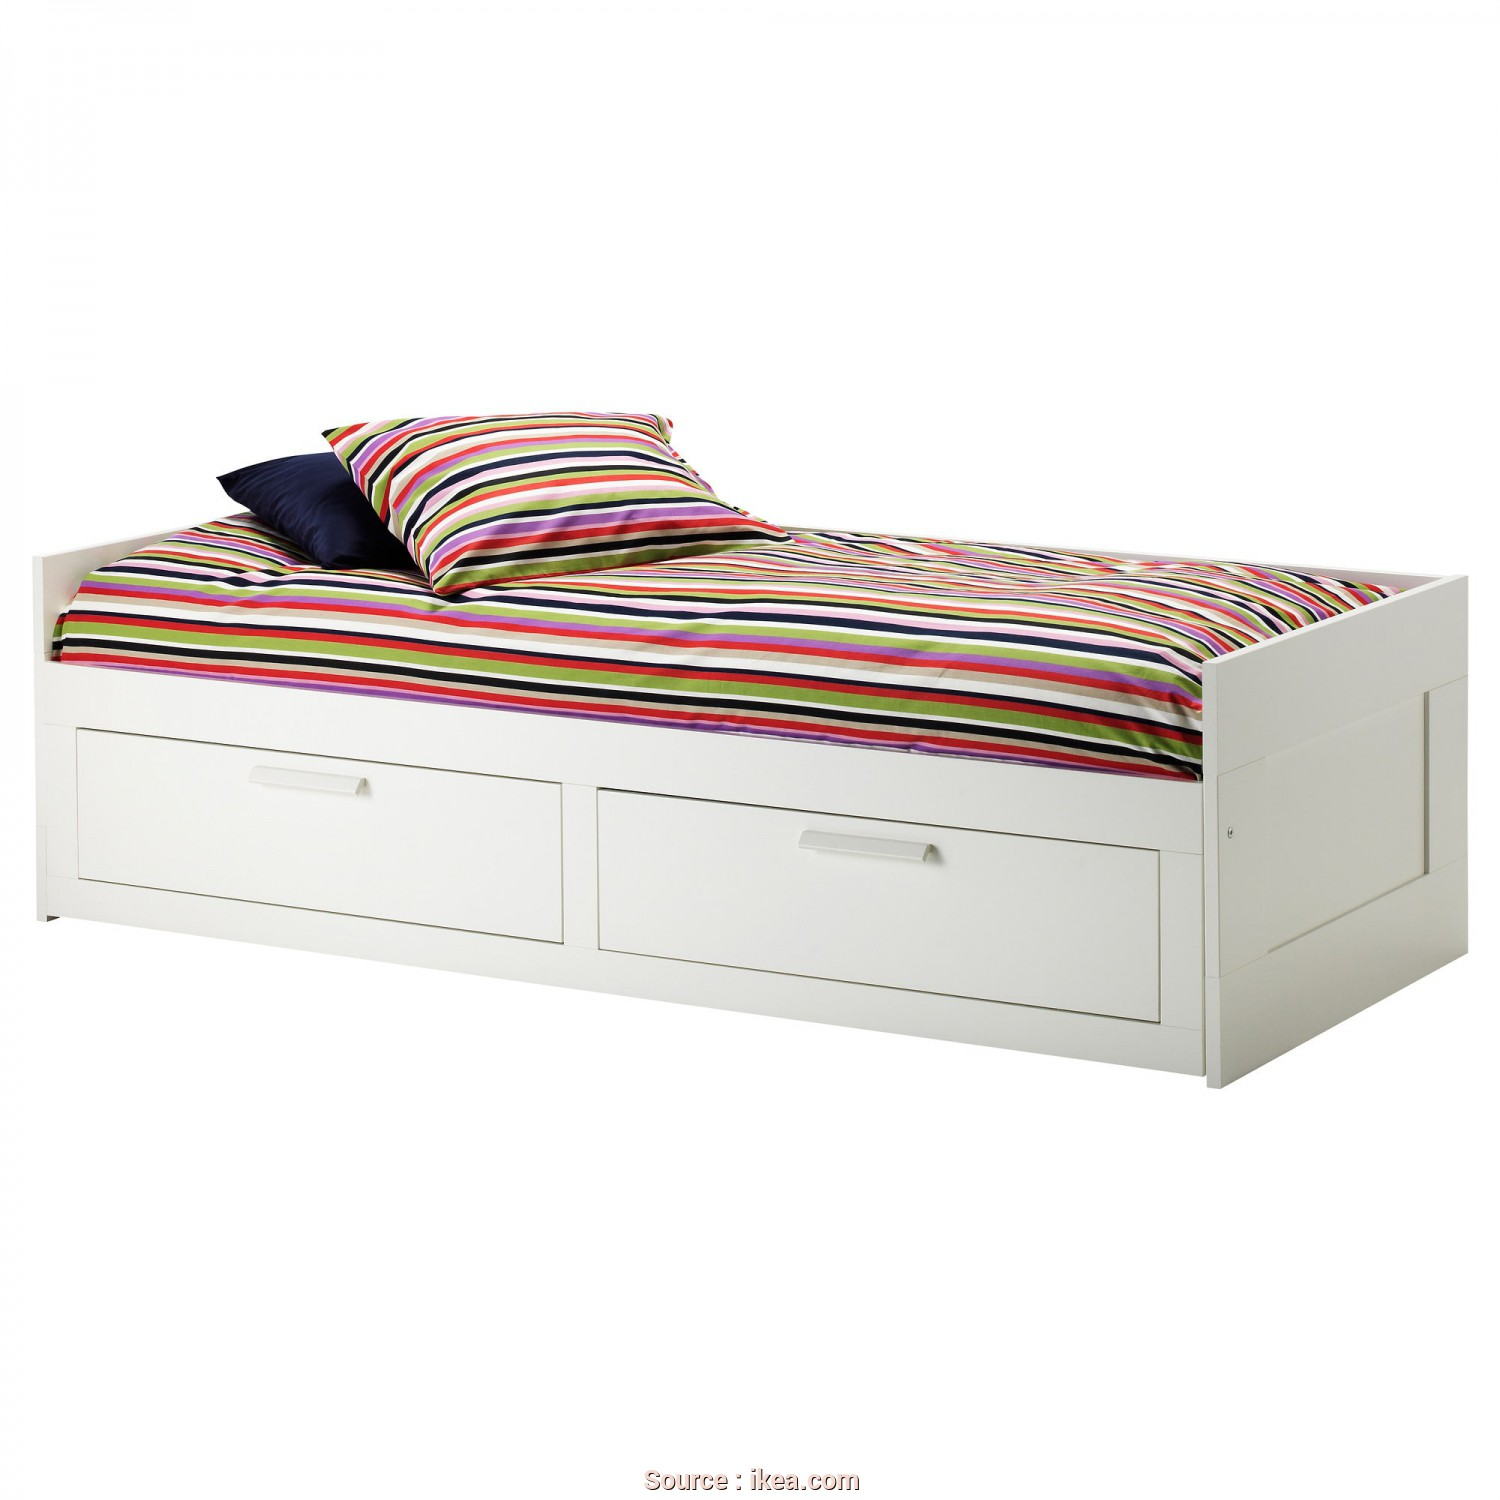 Backabro Ikea Cz, Freddo IKEA BRIMNES Day-Bed Frame With 2 Drawers